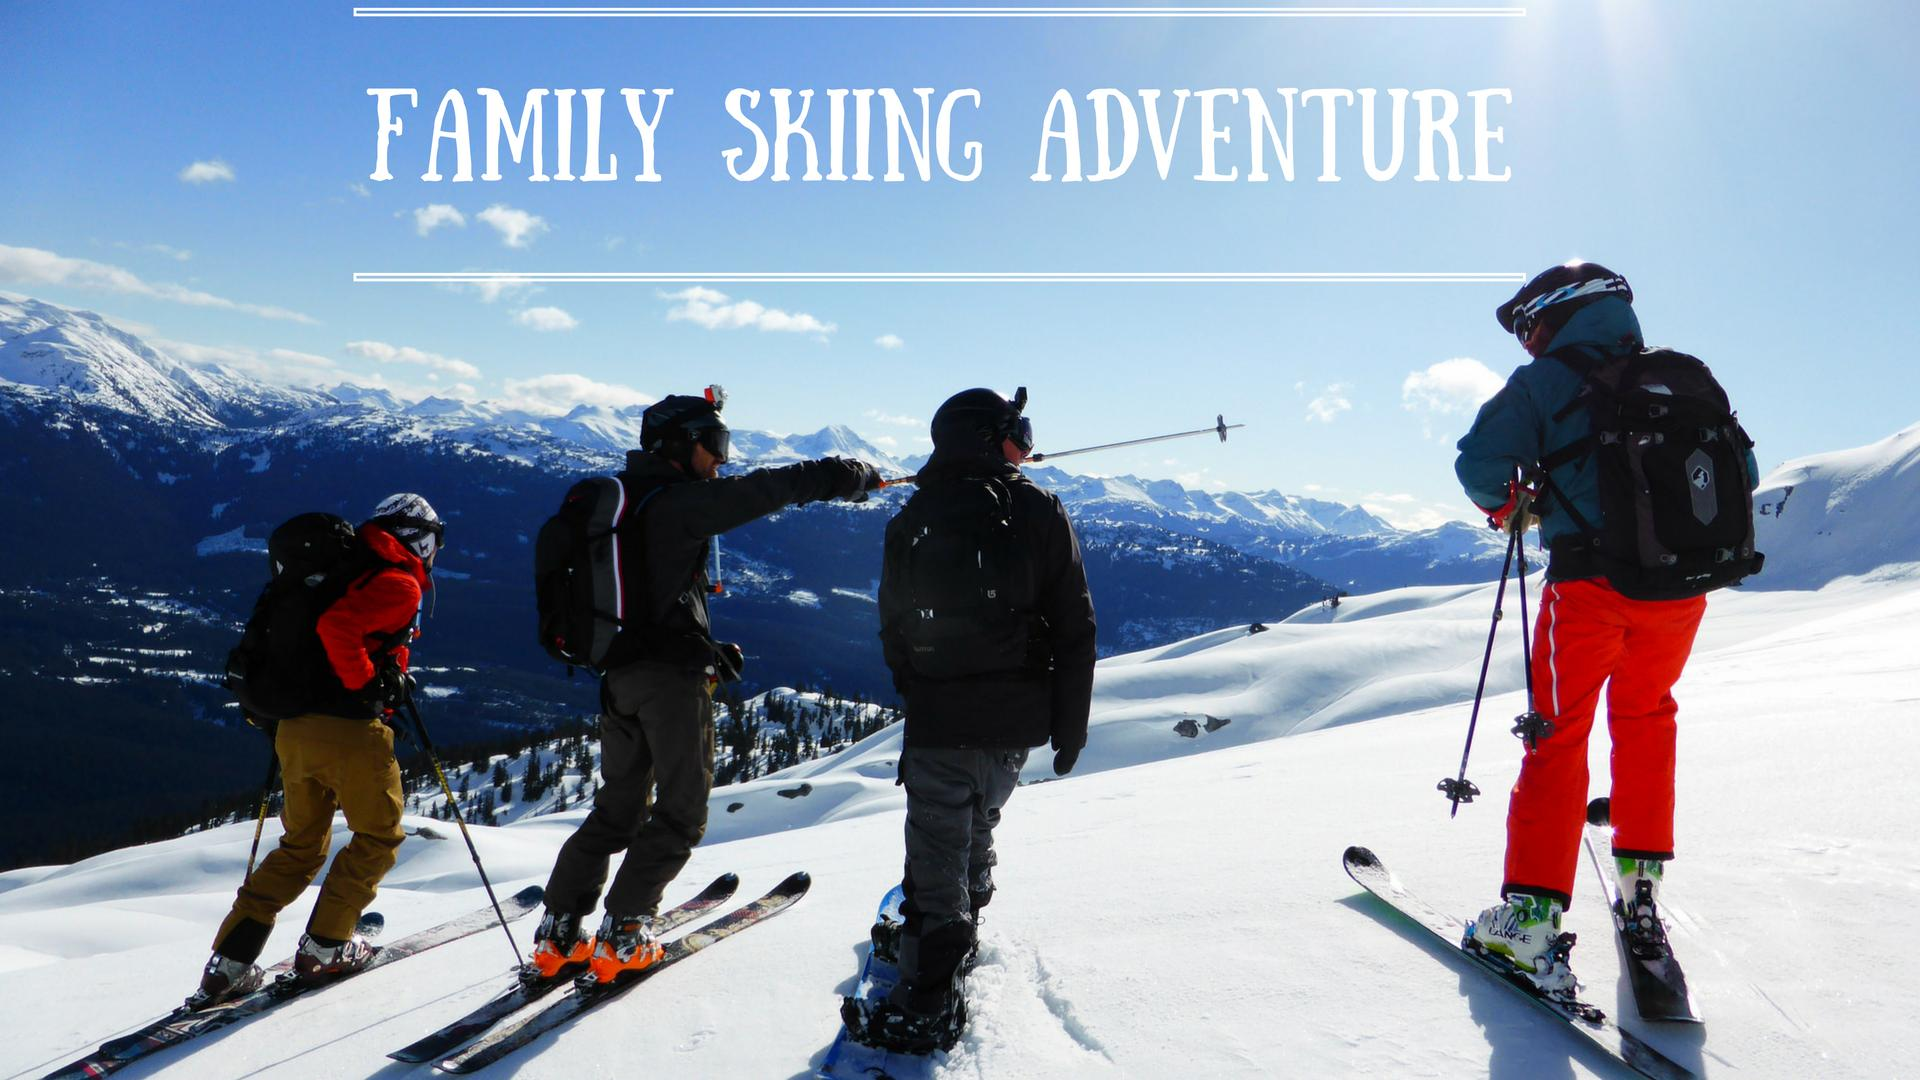 Tips For an Epic Family Skiing Adventure